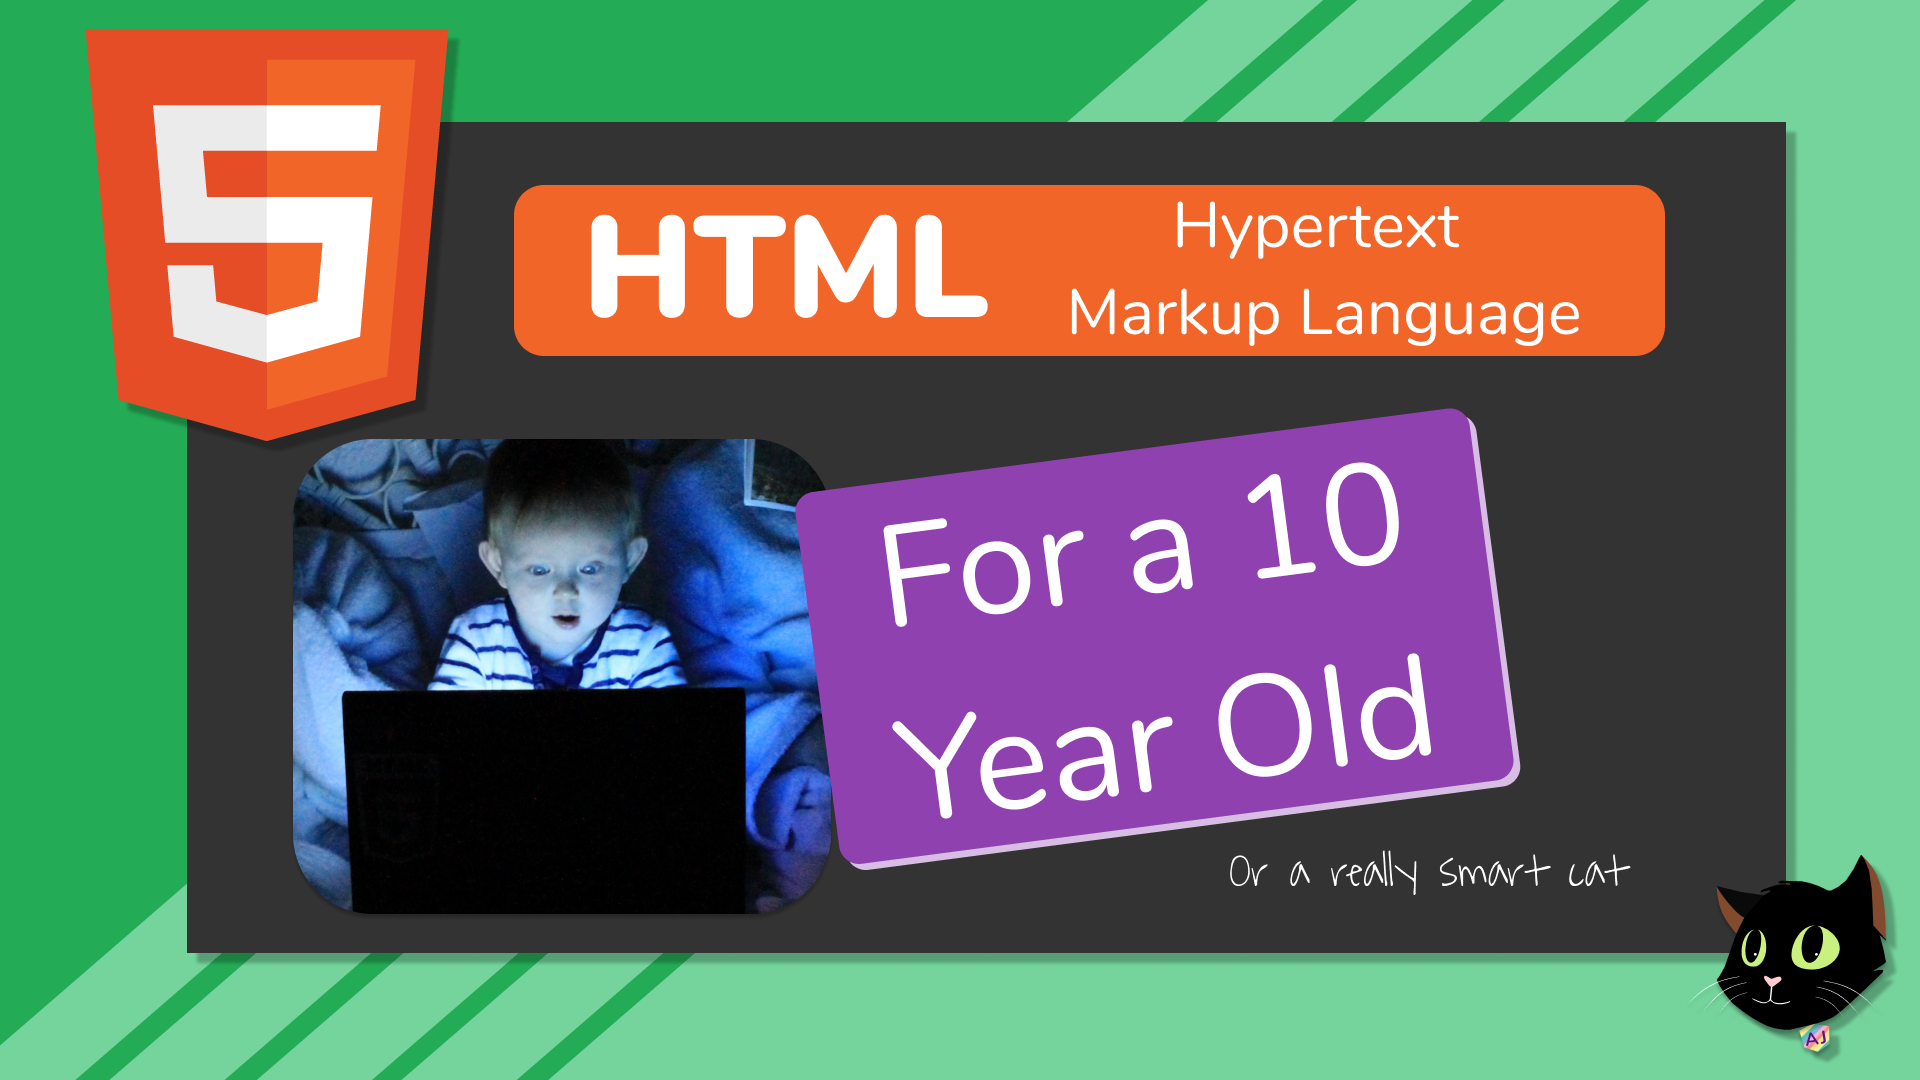 HTML for a 10 Year Old